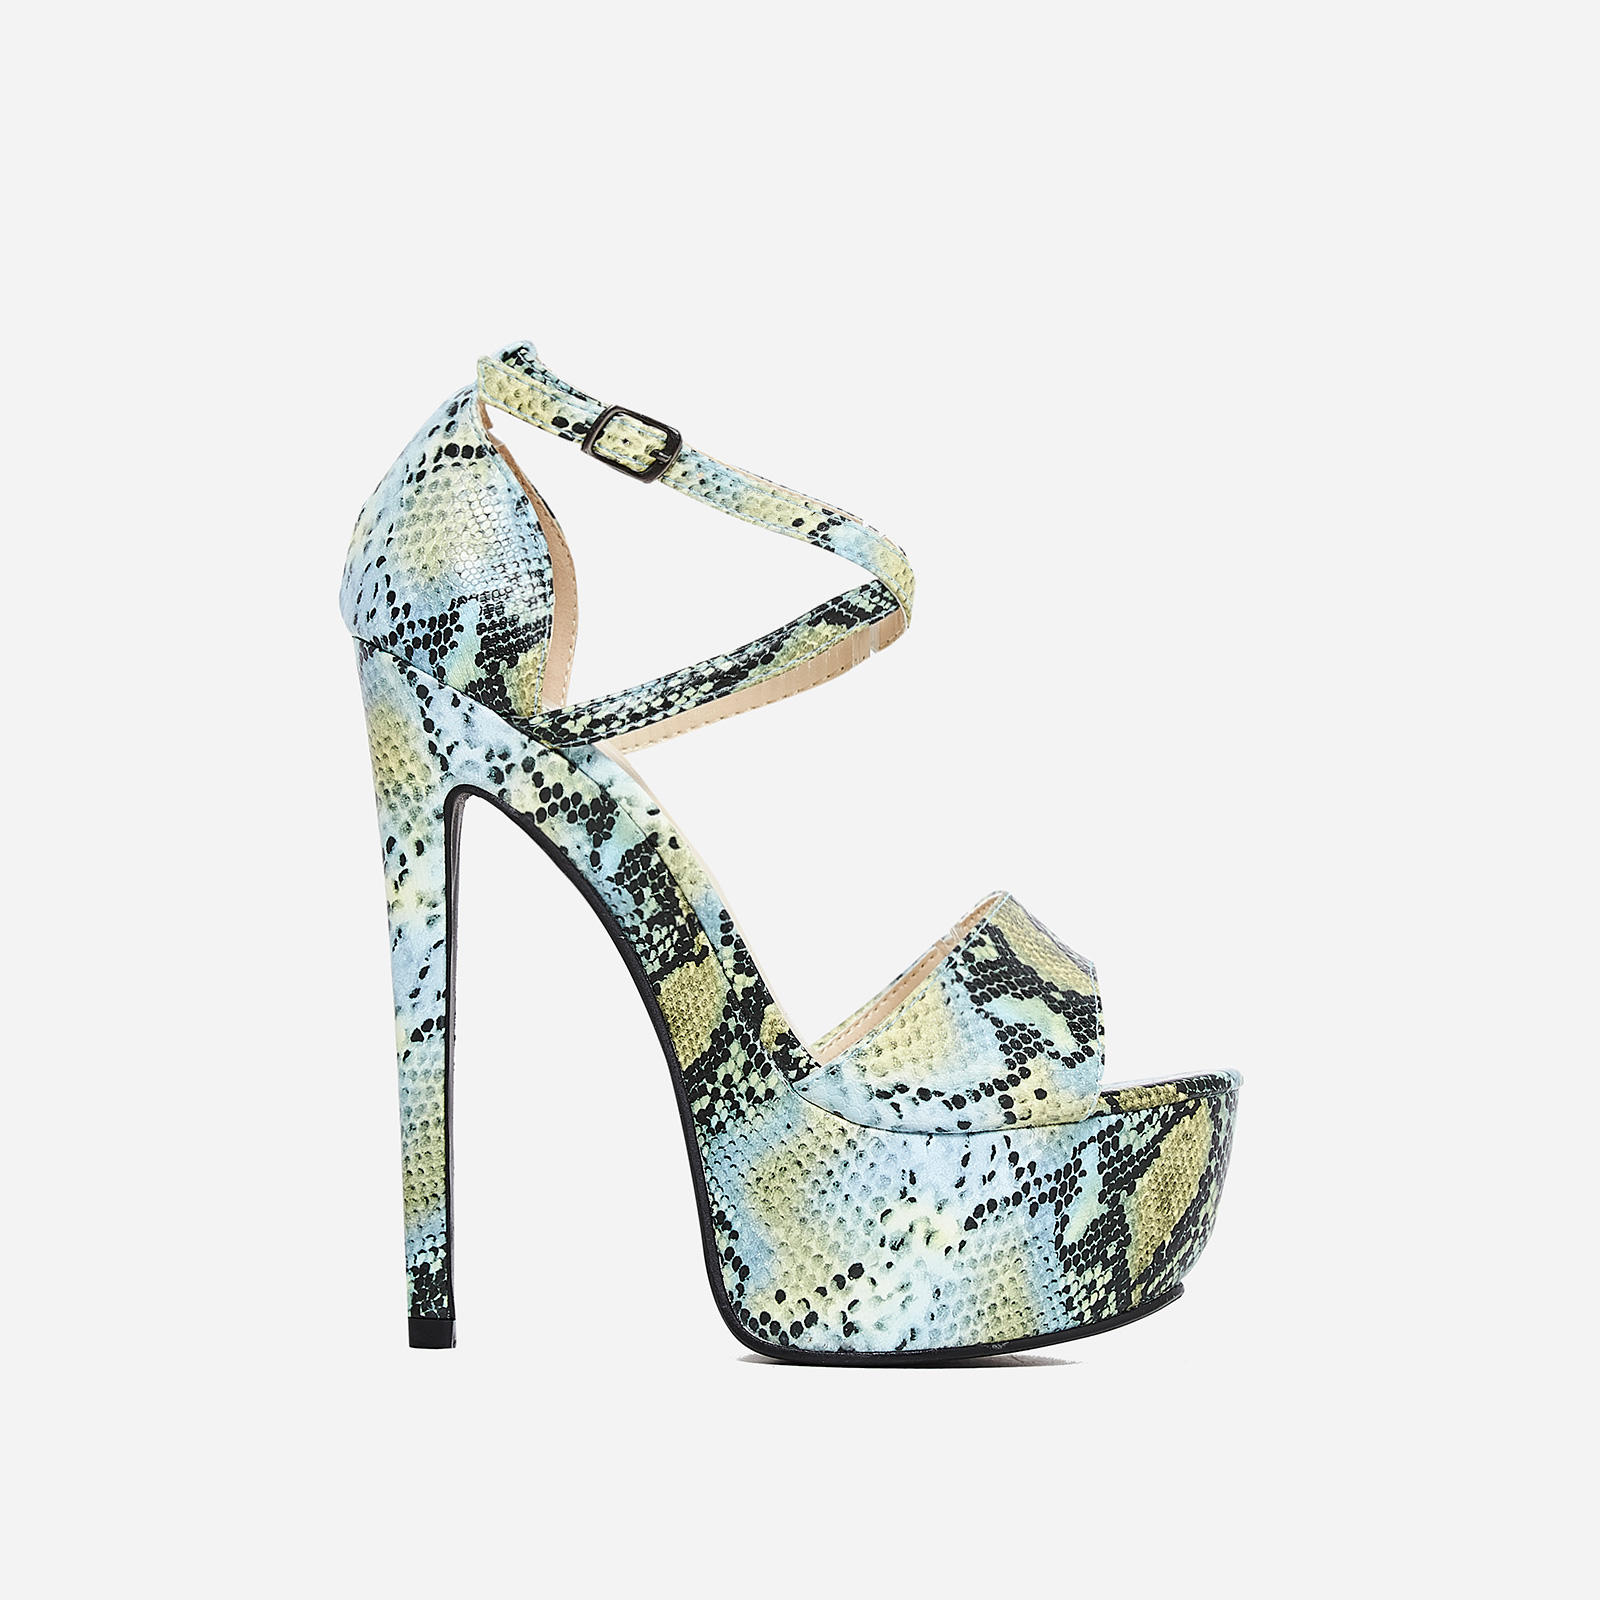 Boa Platform Heel In Green Snake Print Faux Leather